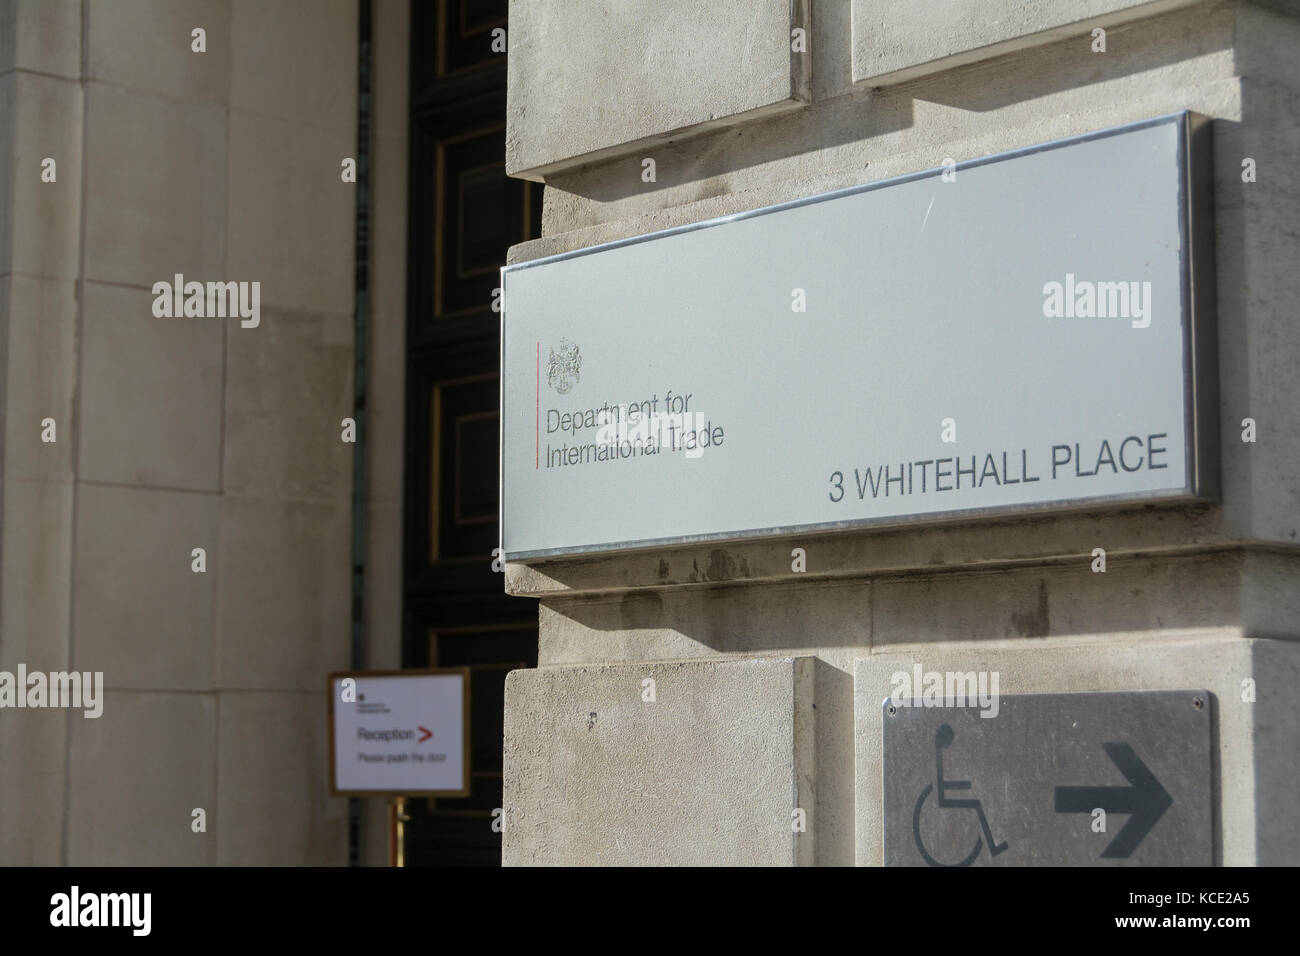 Entrance to the Department for International Trade, Whitehall, London, UK Stock Photo